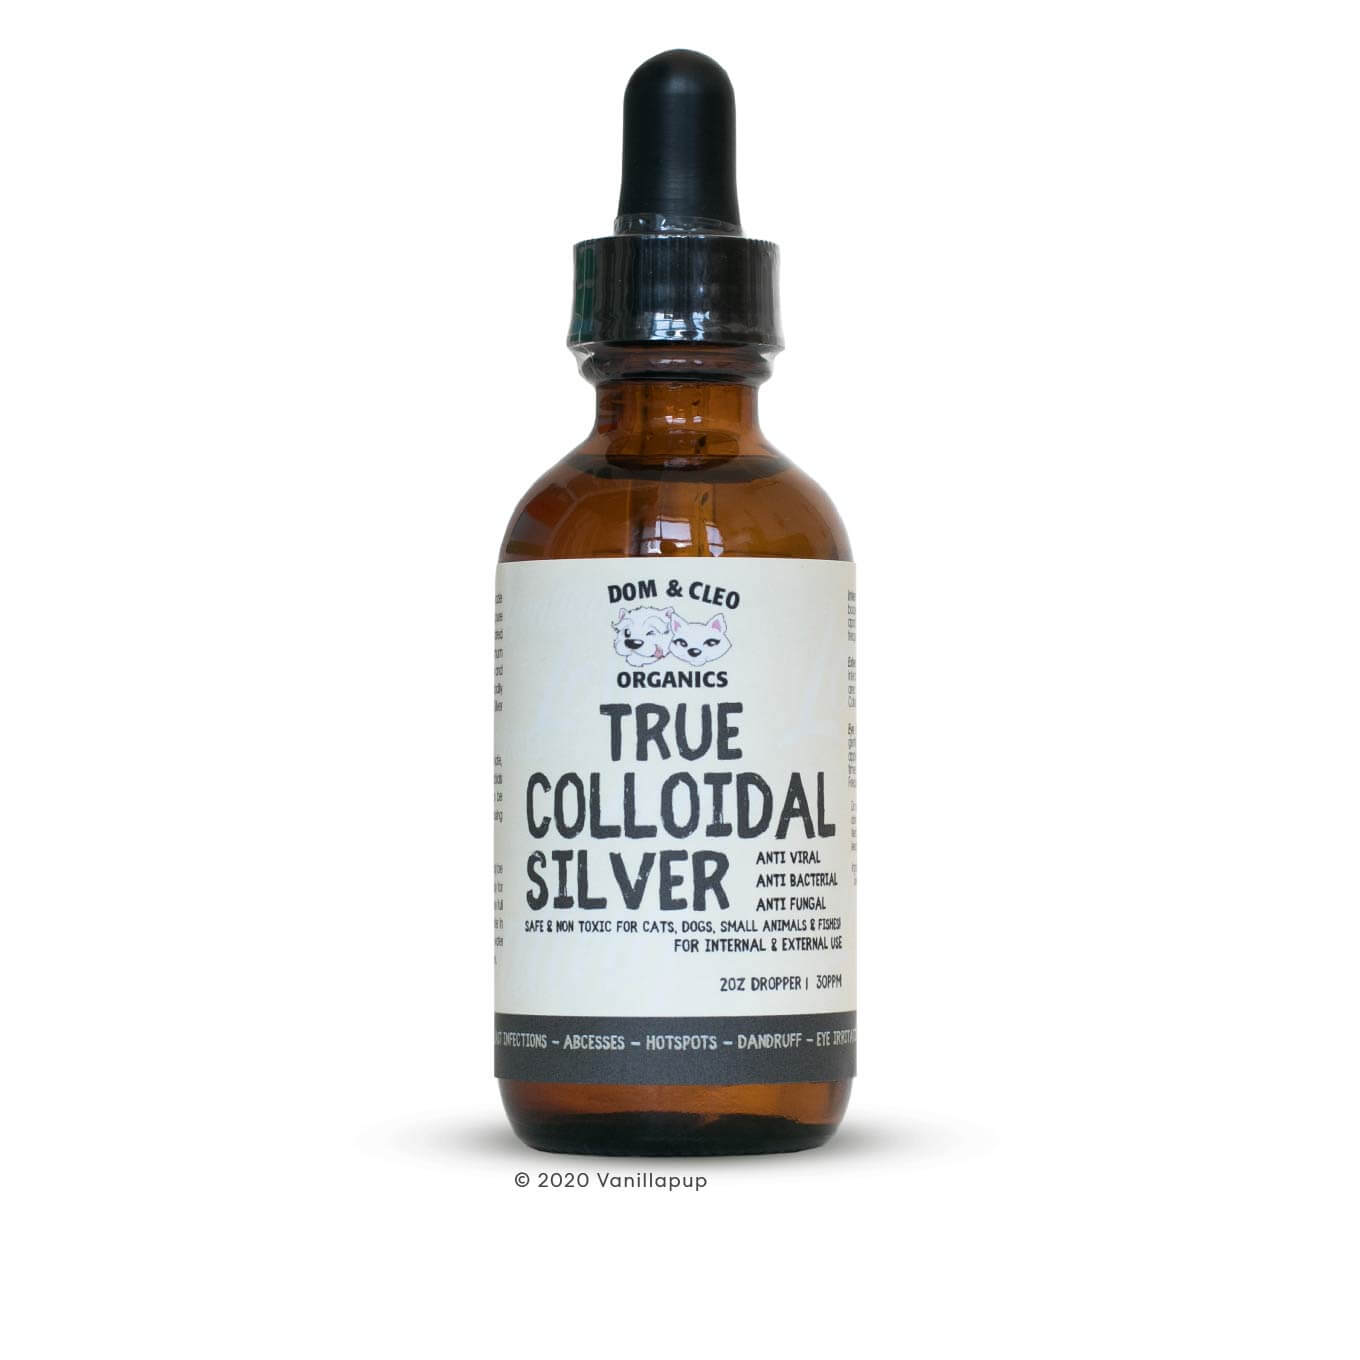 Dom & Cleo Organics True Colloidal Silver Dropper (2oz/60ml) - Cats, Dogs, Dom & Cleo Organics, First Aid, Grooming Essentials, Health, Hot Spots, Latte, Paw Licking, Skin, Starter Pack, Supplements, Tear Stains, Vision - Vanillapup - Online Pet Shop